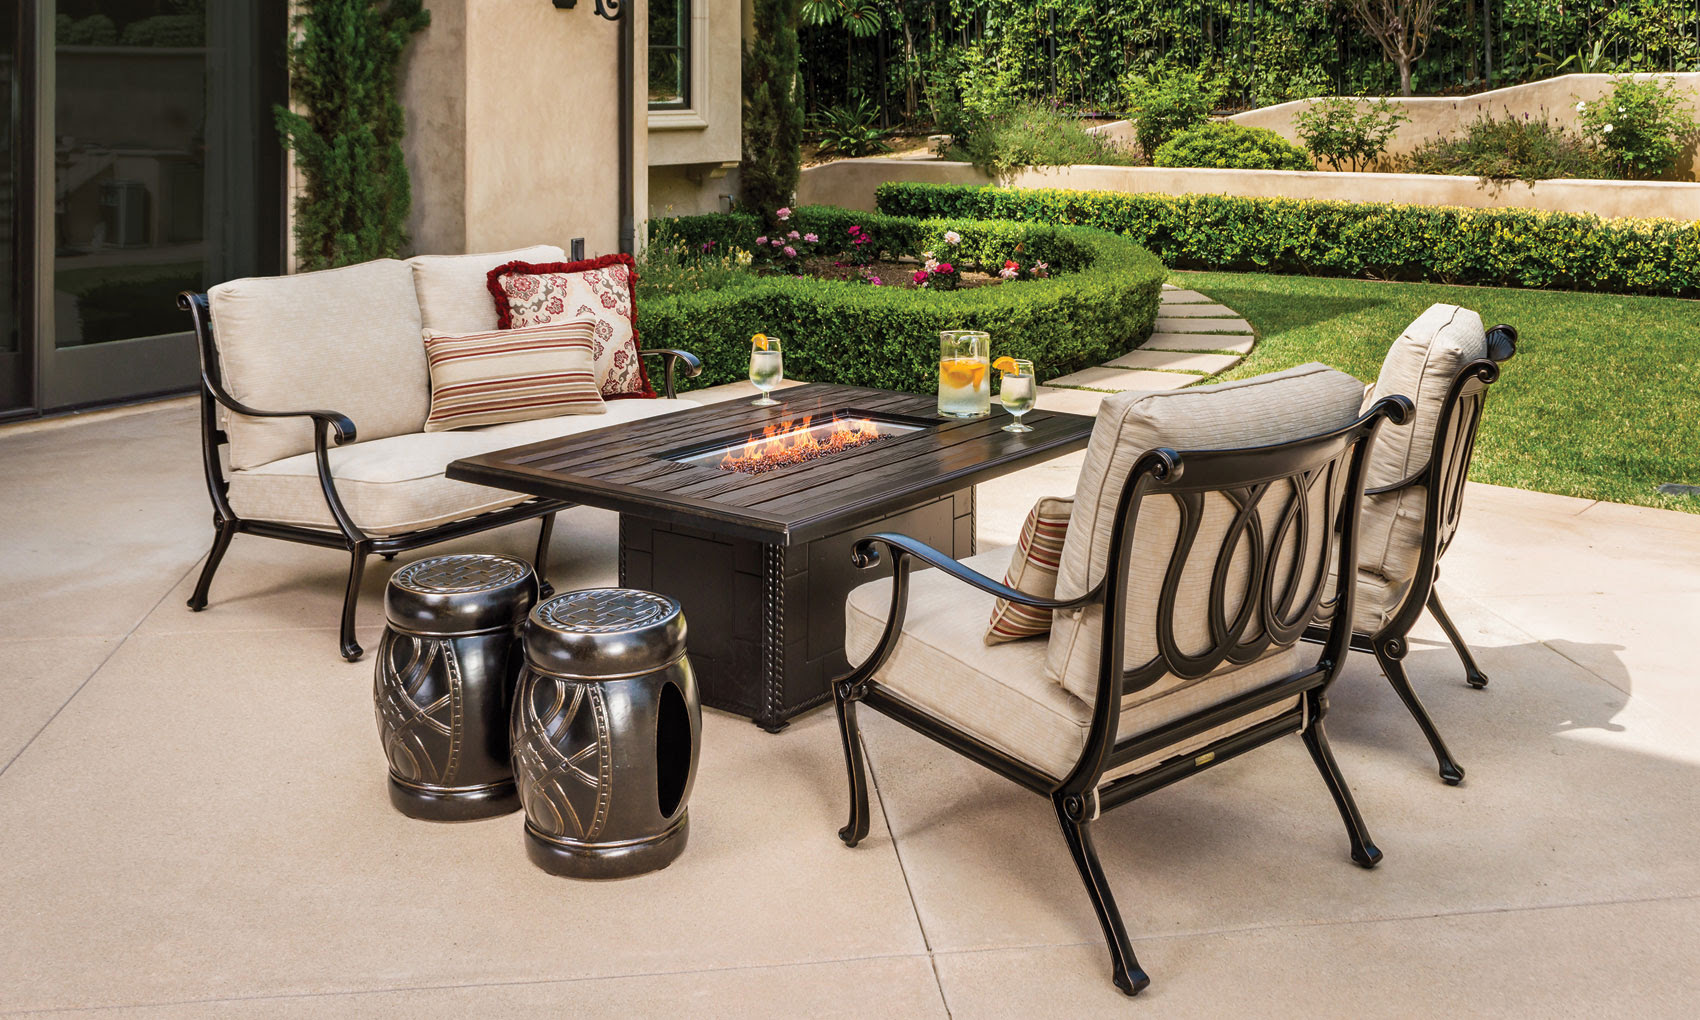 Outdoor Patio Furniture in Palm Desert, Palm Springs